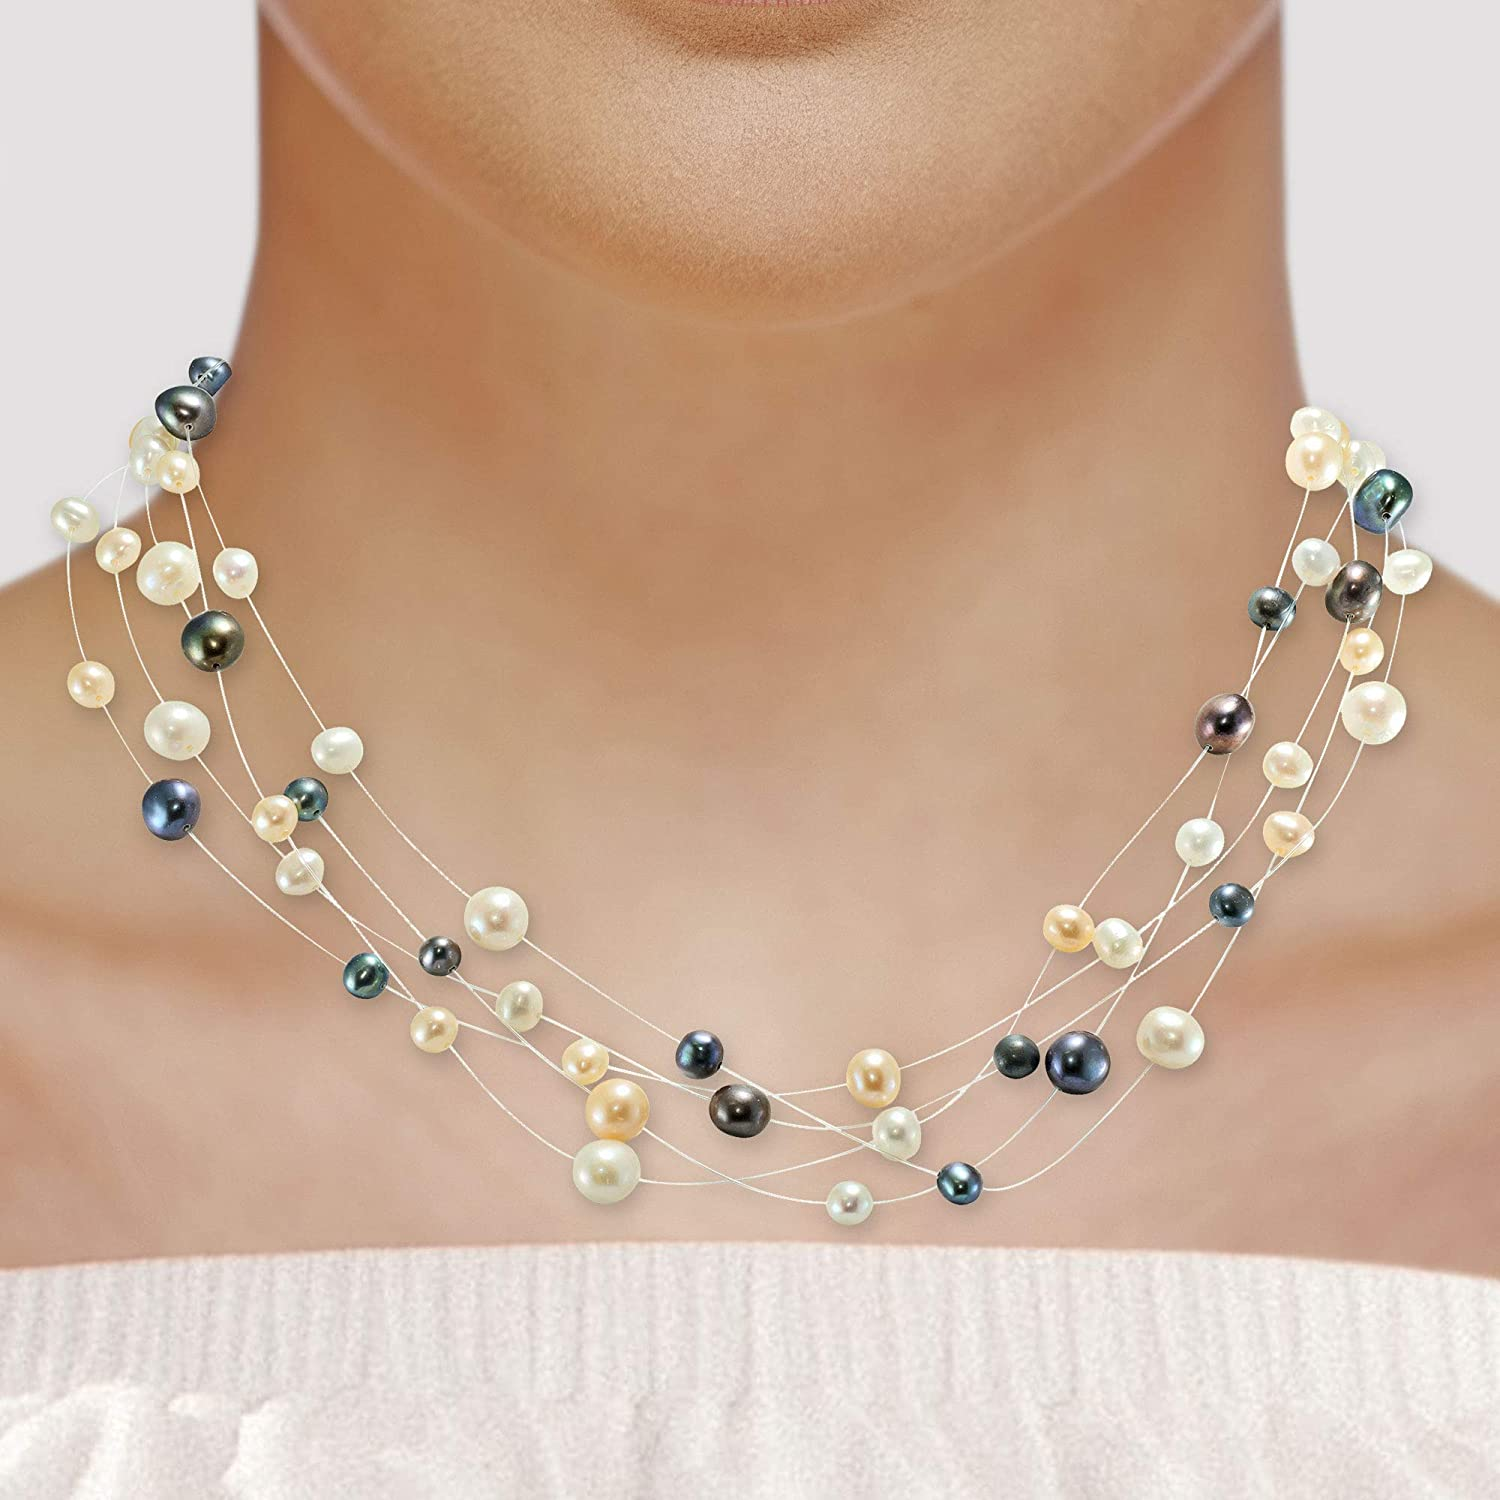 14 Karat Yellow Gold Multi Color Freshwater Pearl 16 Inch Necklace, Multi Strand Design with Spring Ring Clasp Lock